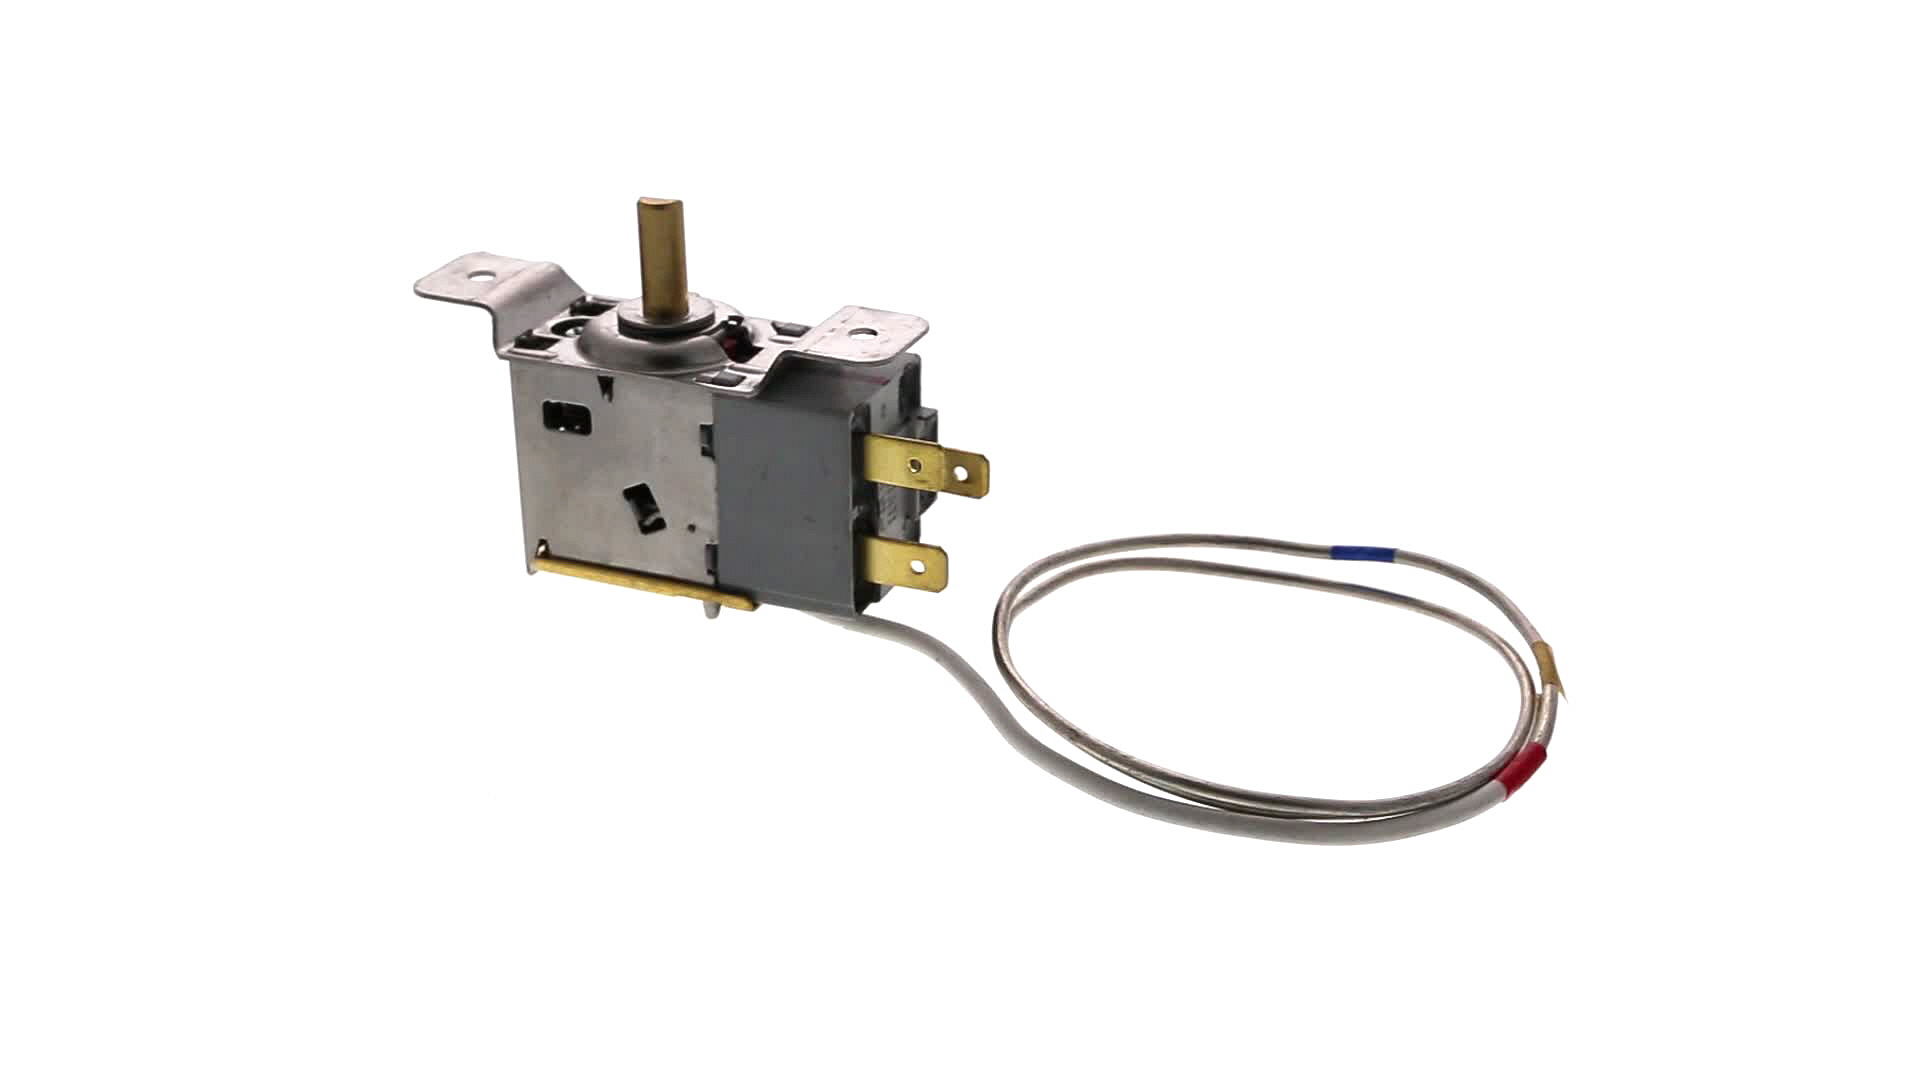 THERMOSTAT Froid WDFE28C-L4 1093322 BULBE=560mm - 2